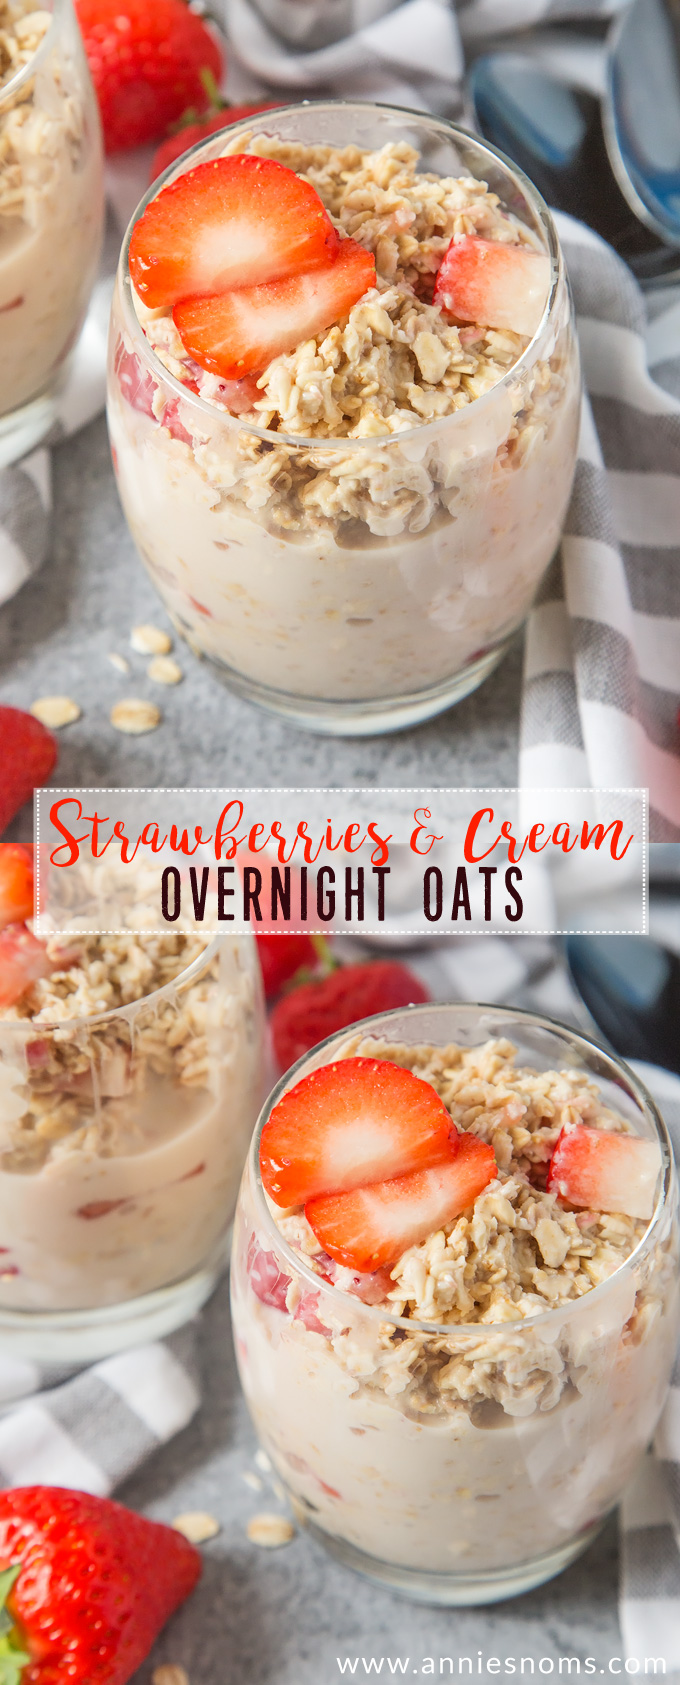 My Strawberries and Cream Overnight Oats are creamy, sweet and jam packed with fresh strawberries. These are bound to become your new favourite breakfast!